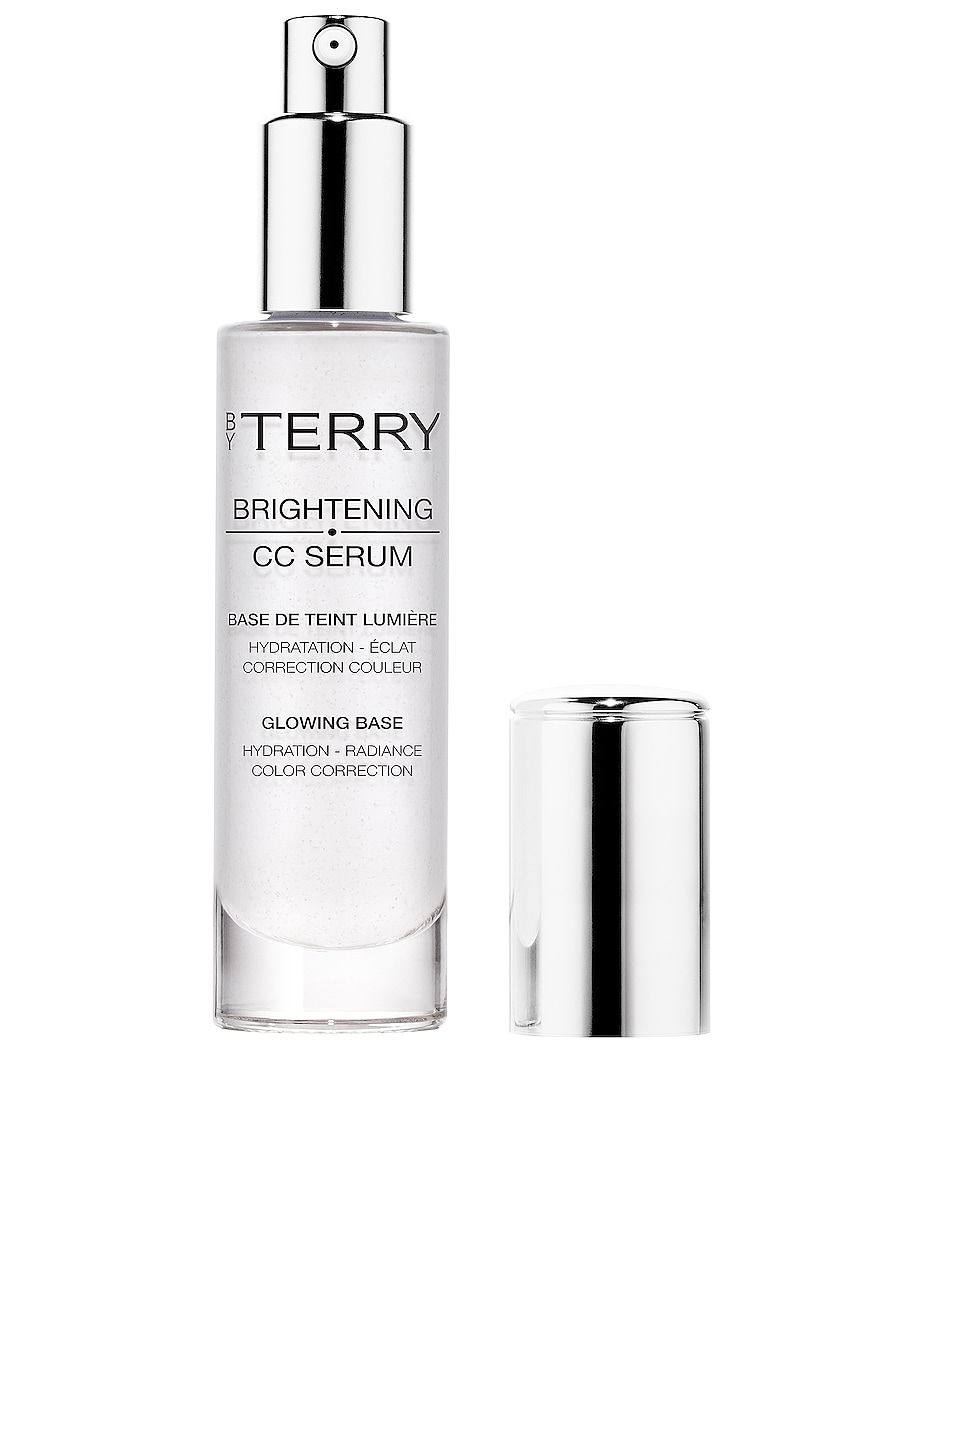 By Terry Brightening CC Serum in Immaculate Light